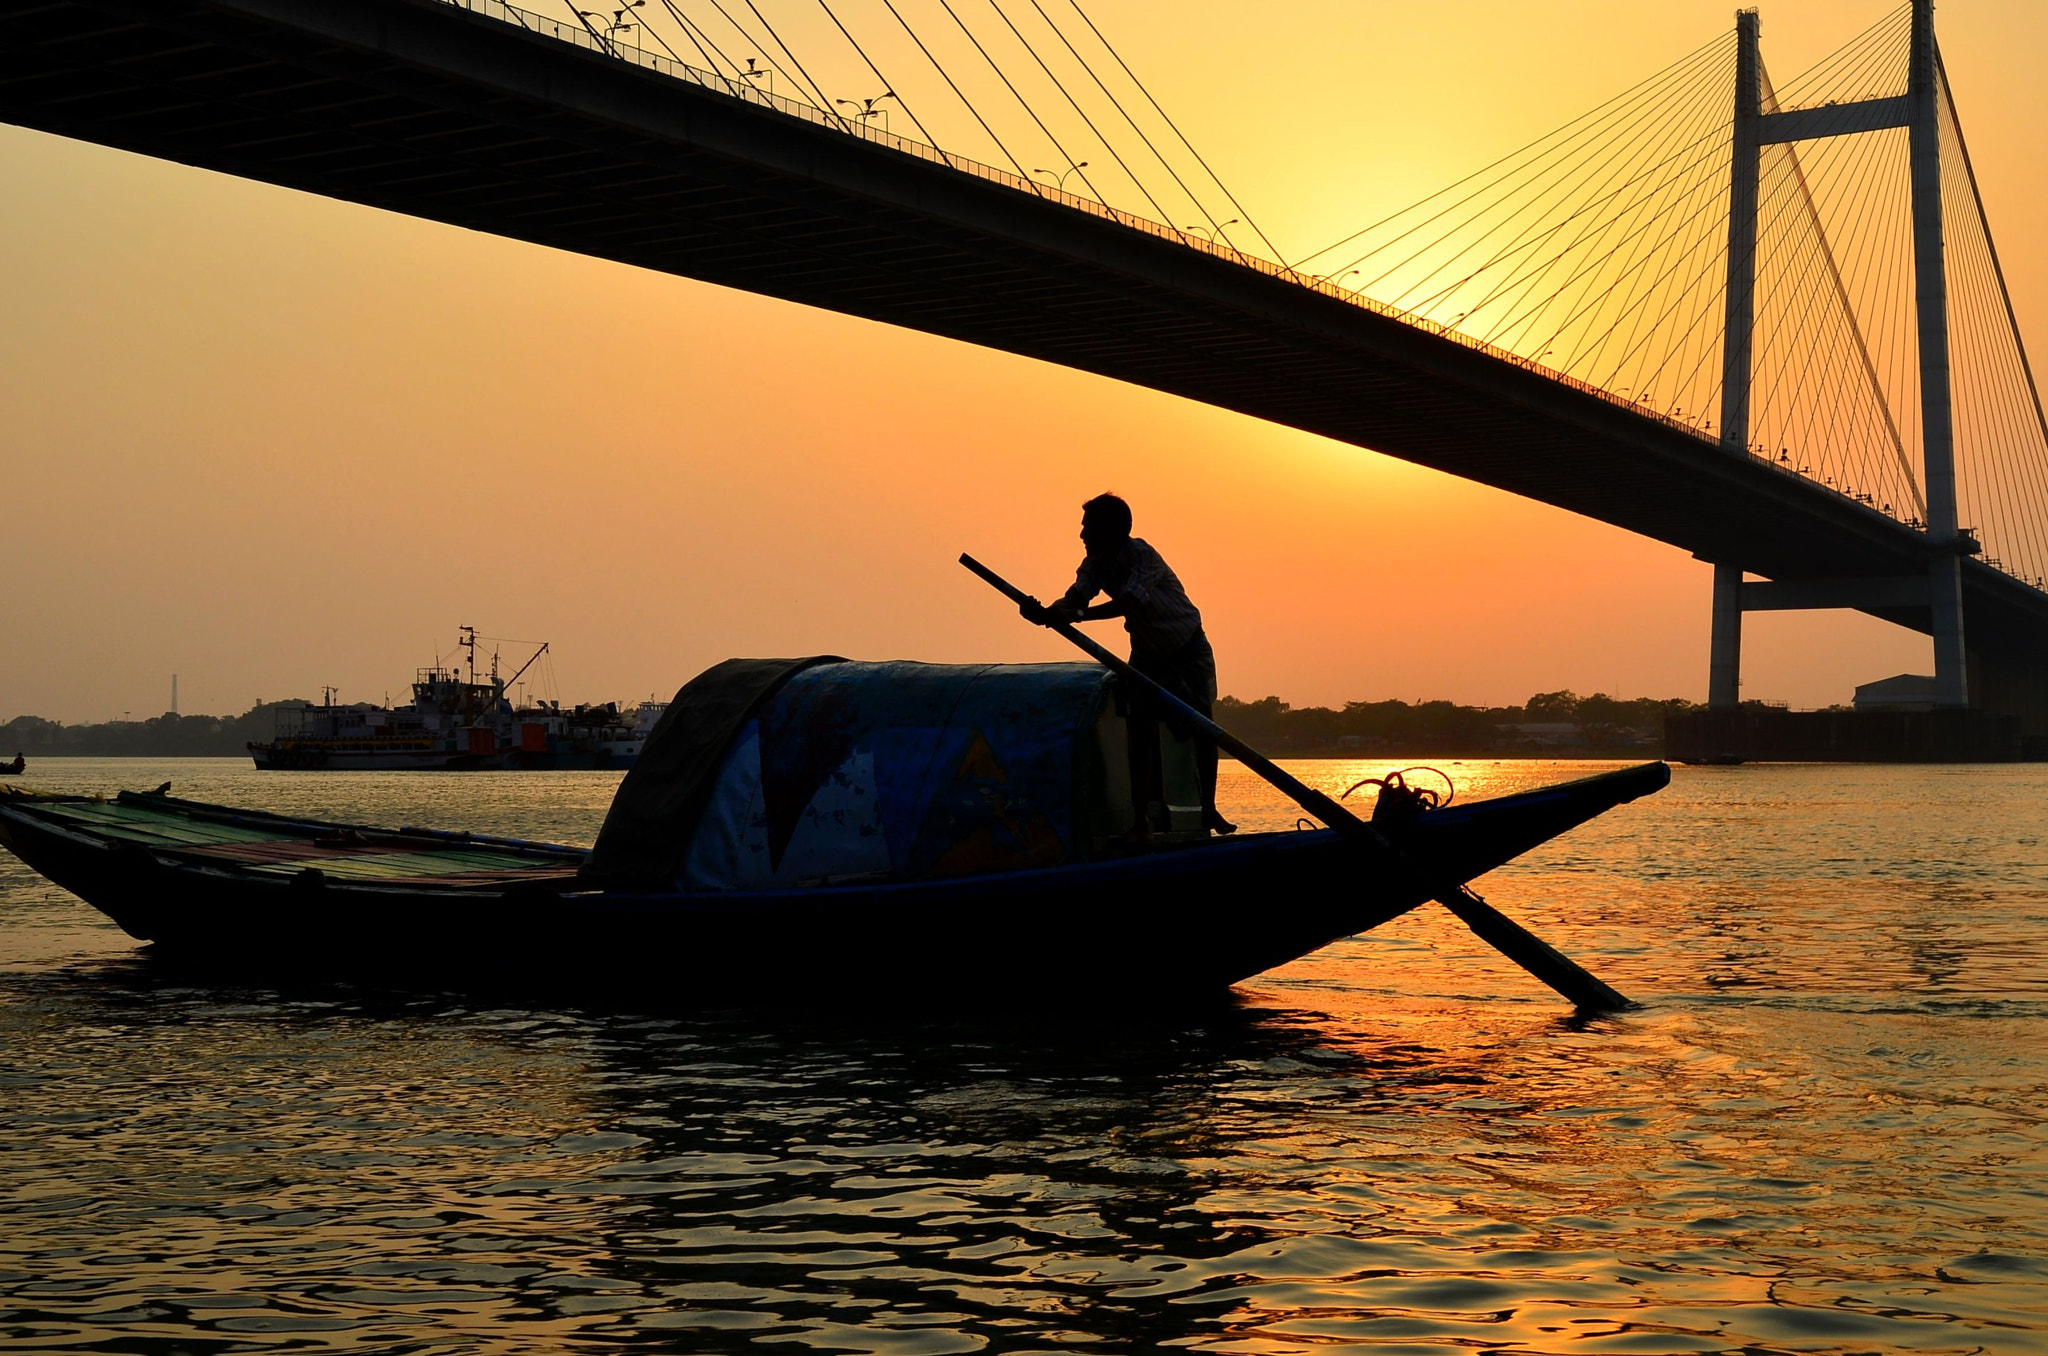 Photograph Peaceful Moment! by Palash K on 500px